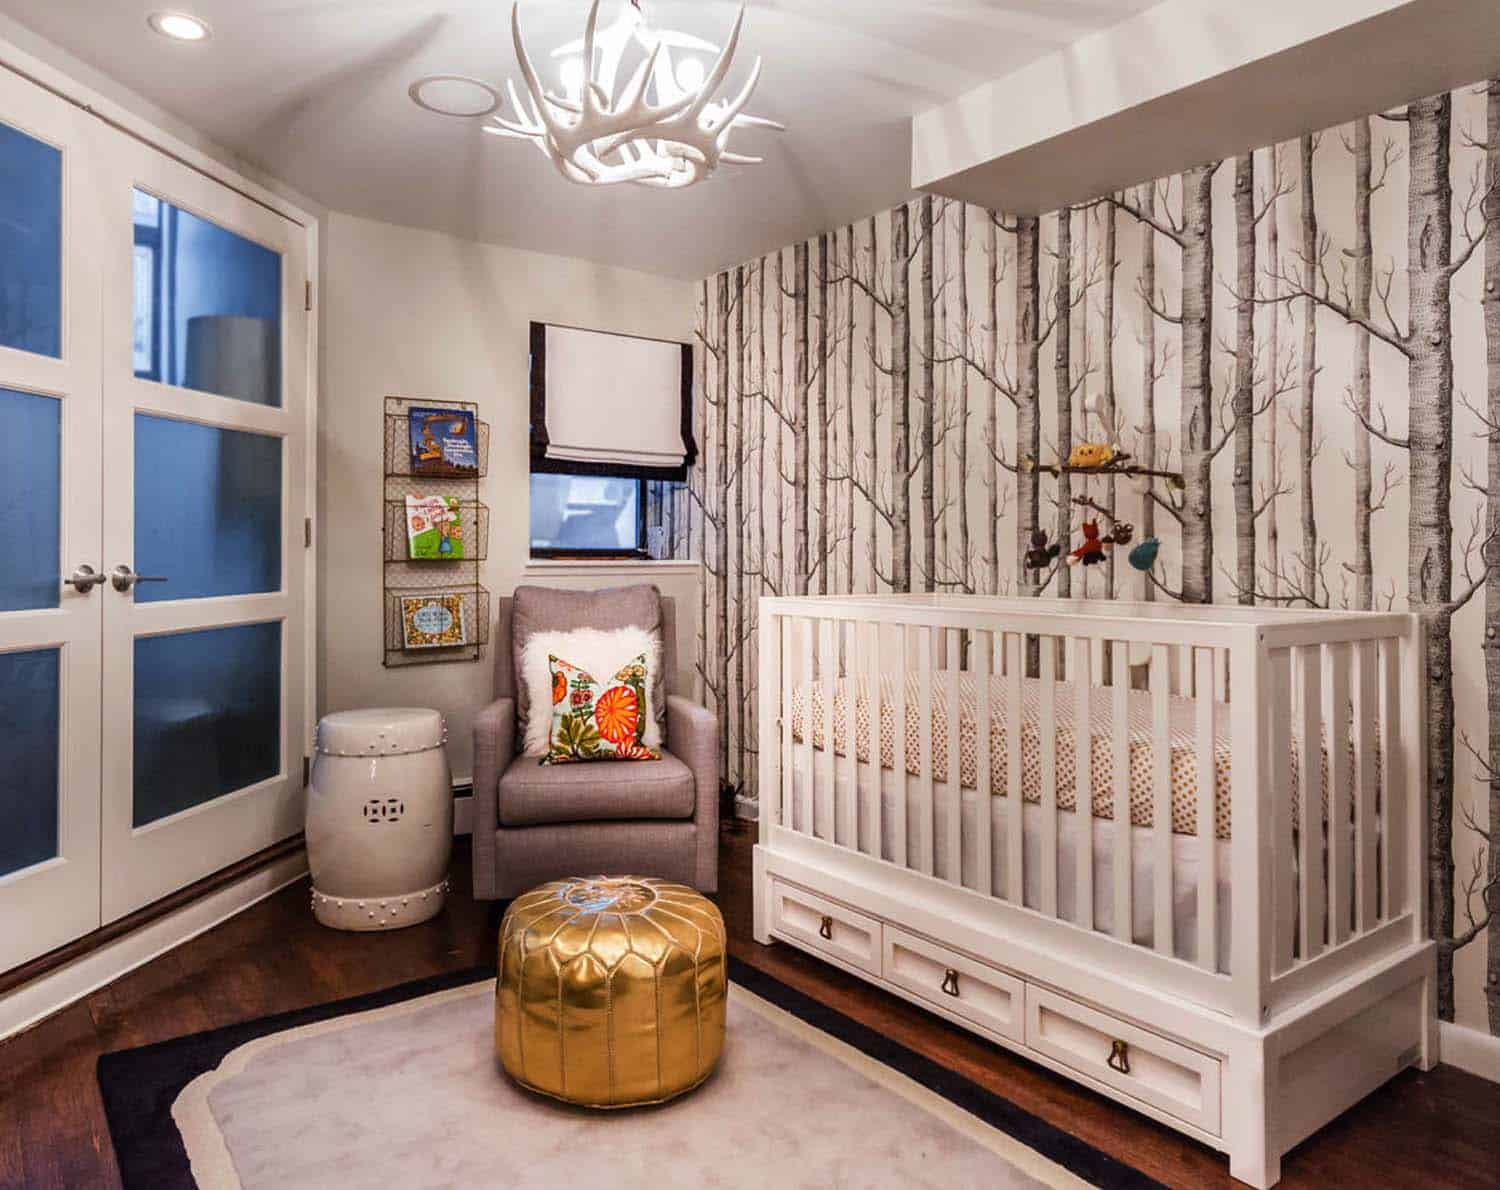 Stylish Nursery Decorating Ideas-44-1 Kindesign